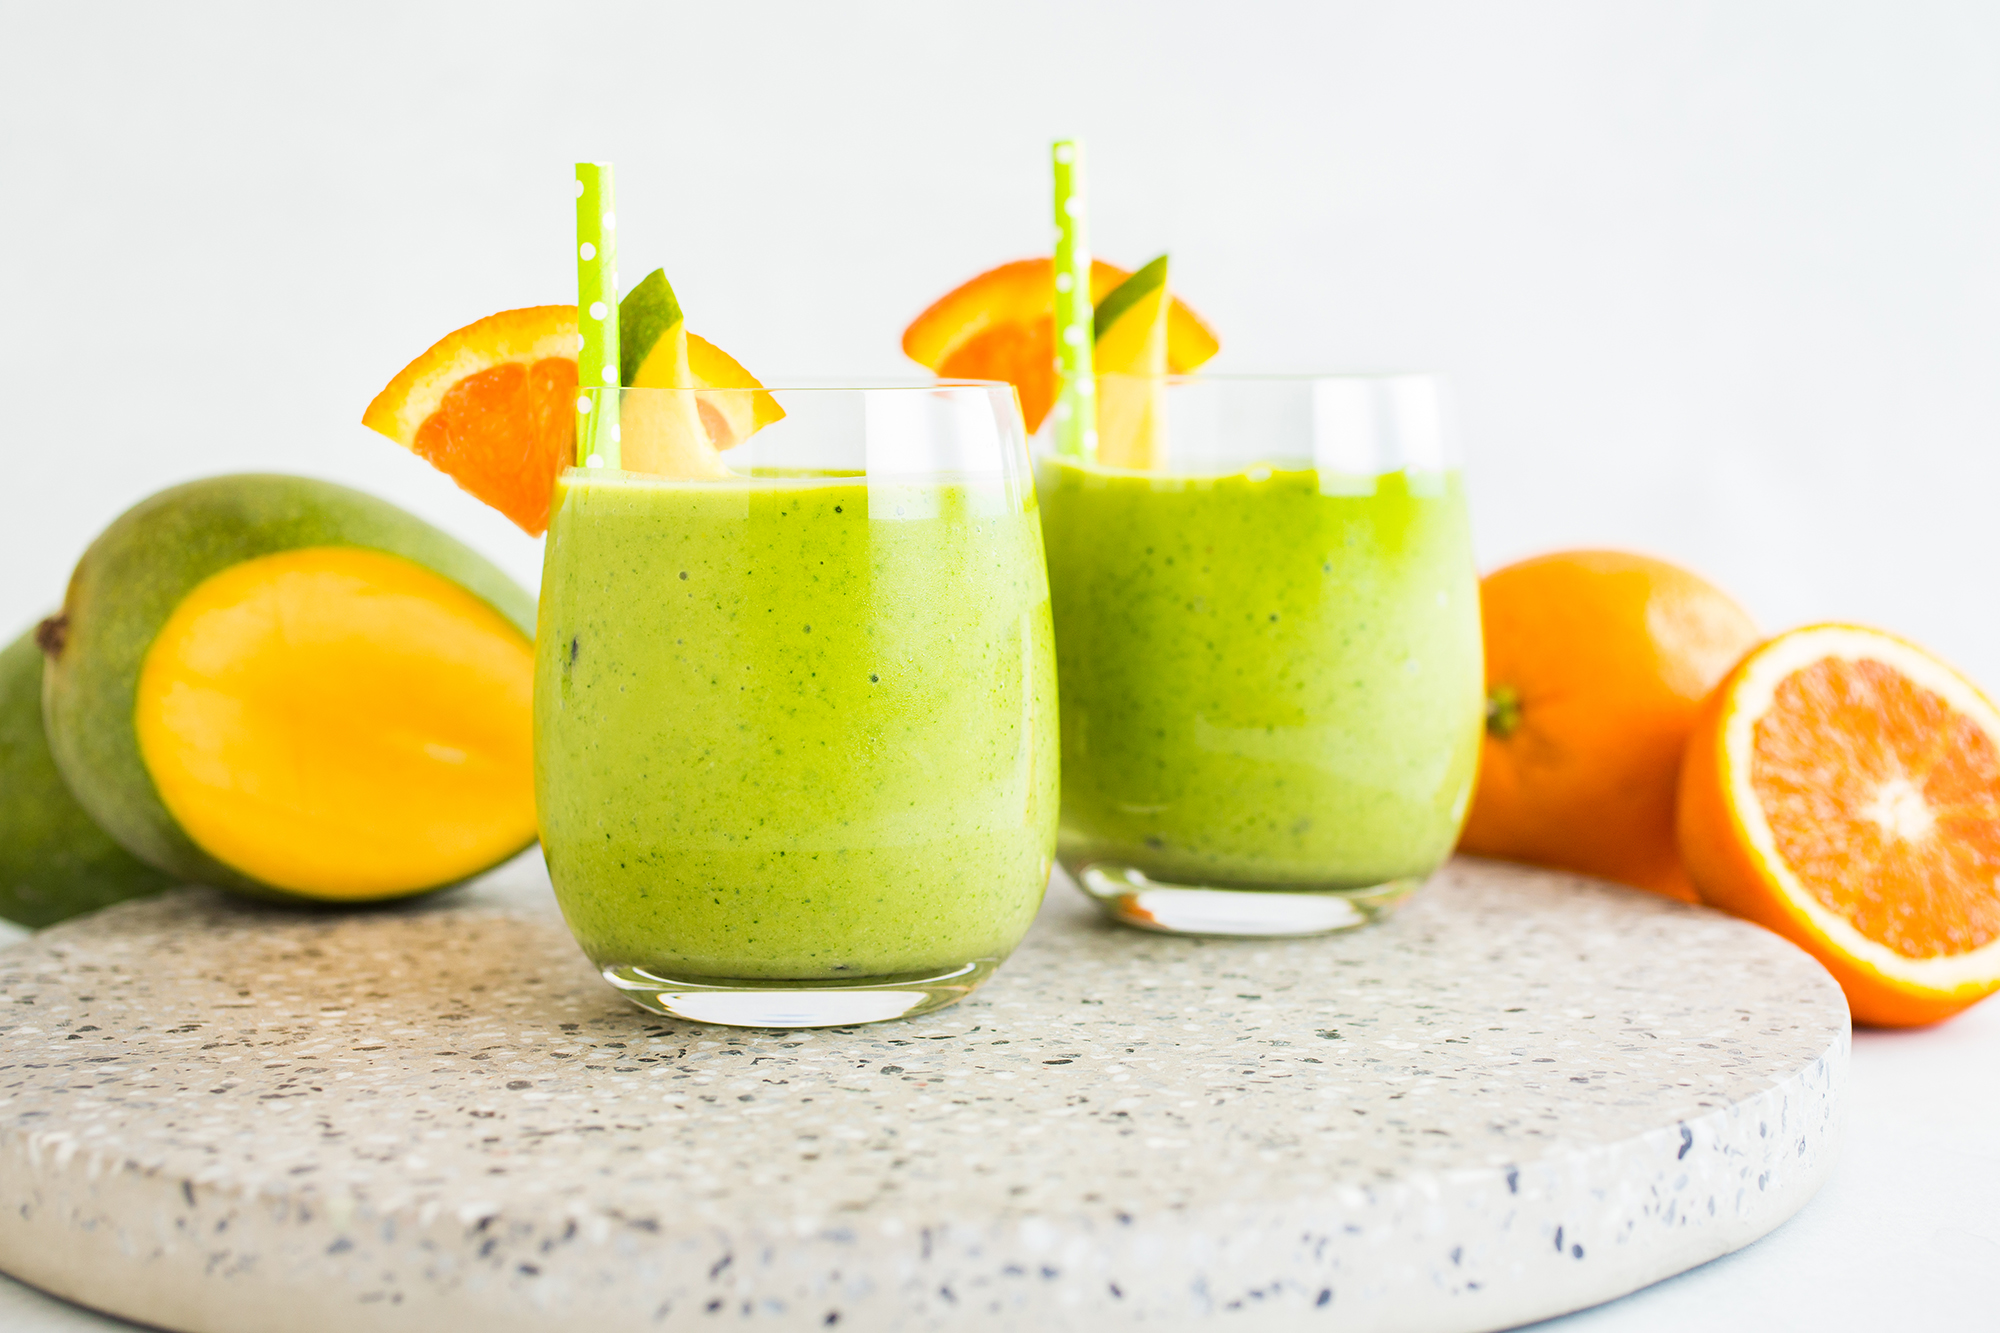 Mango and Kale Smoothie